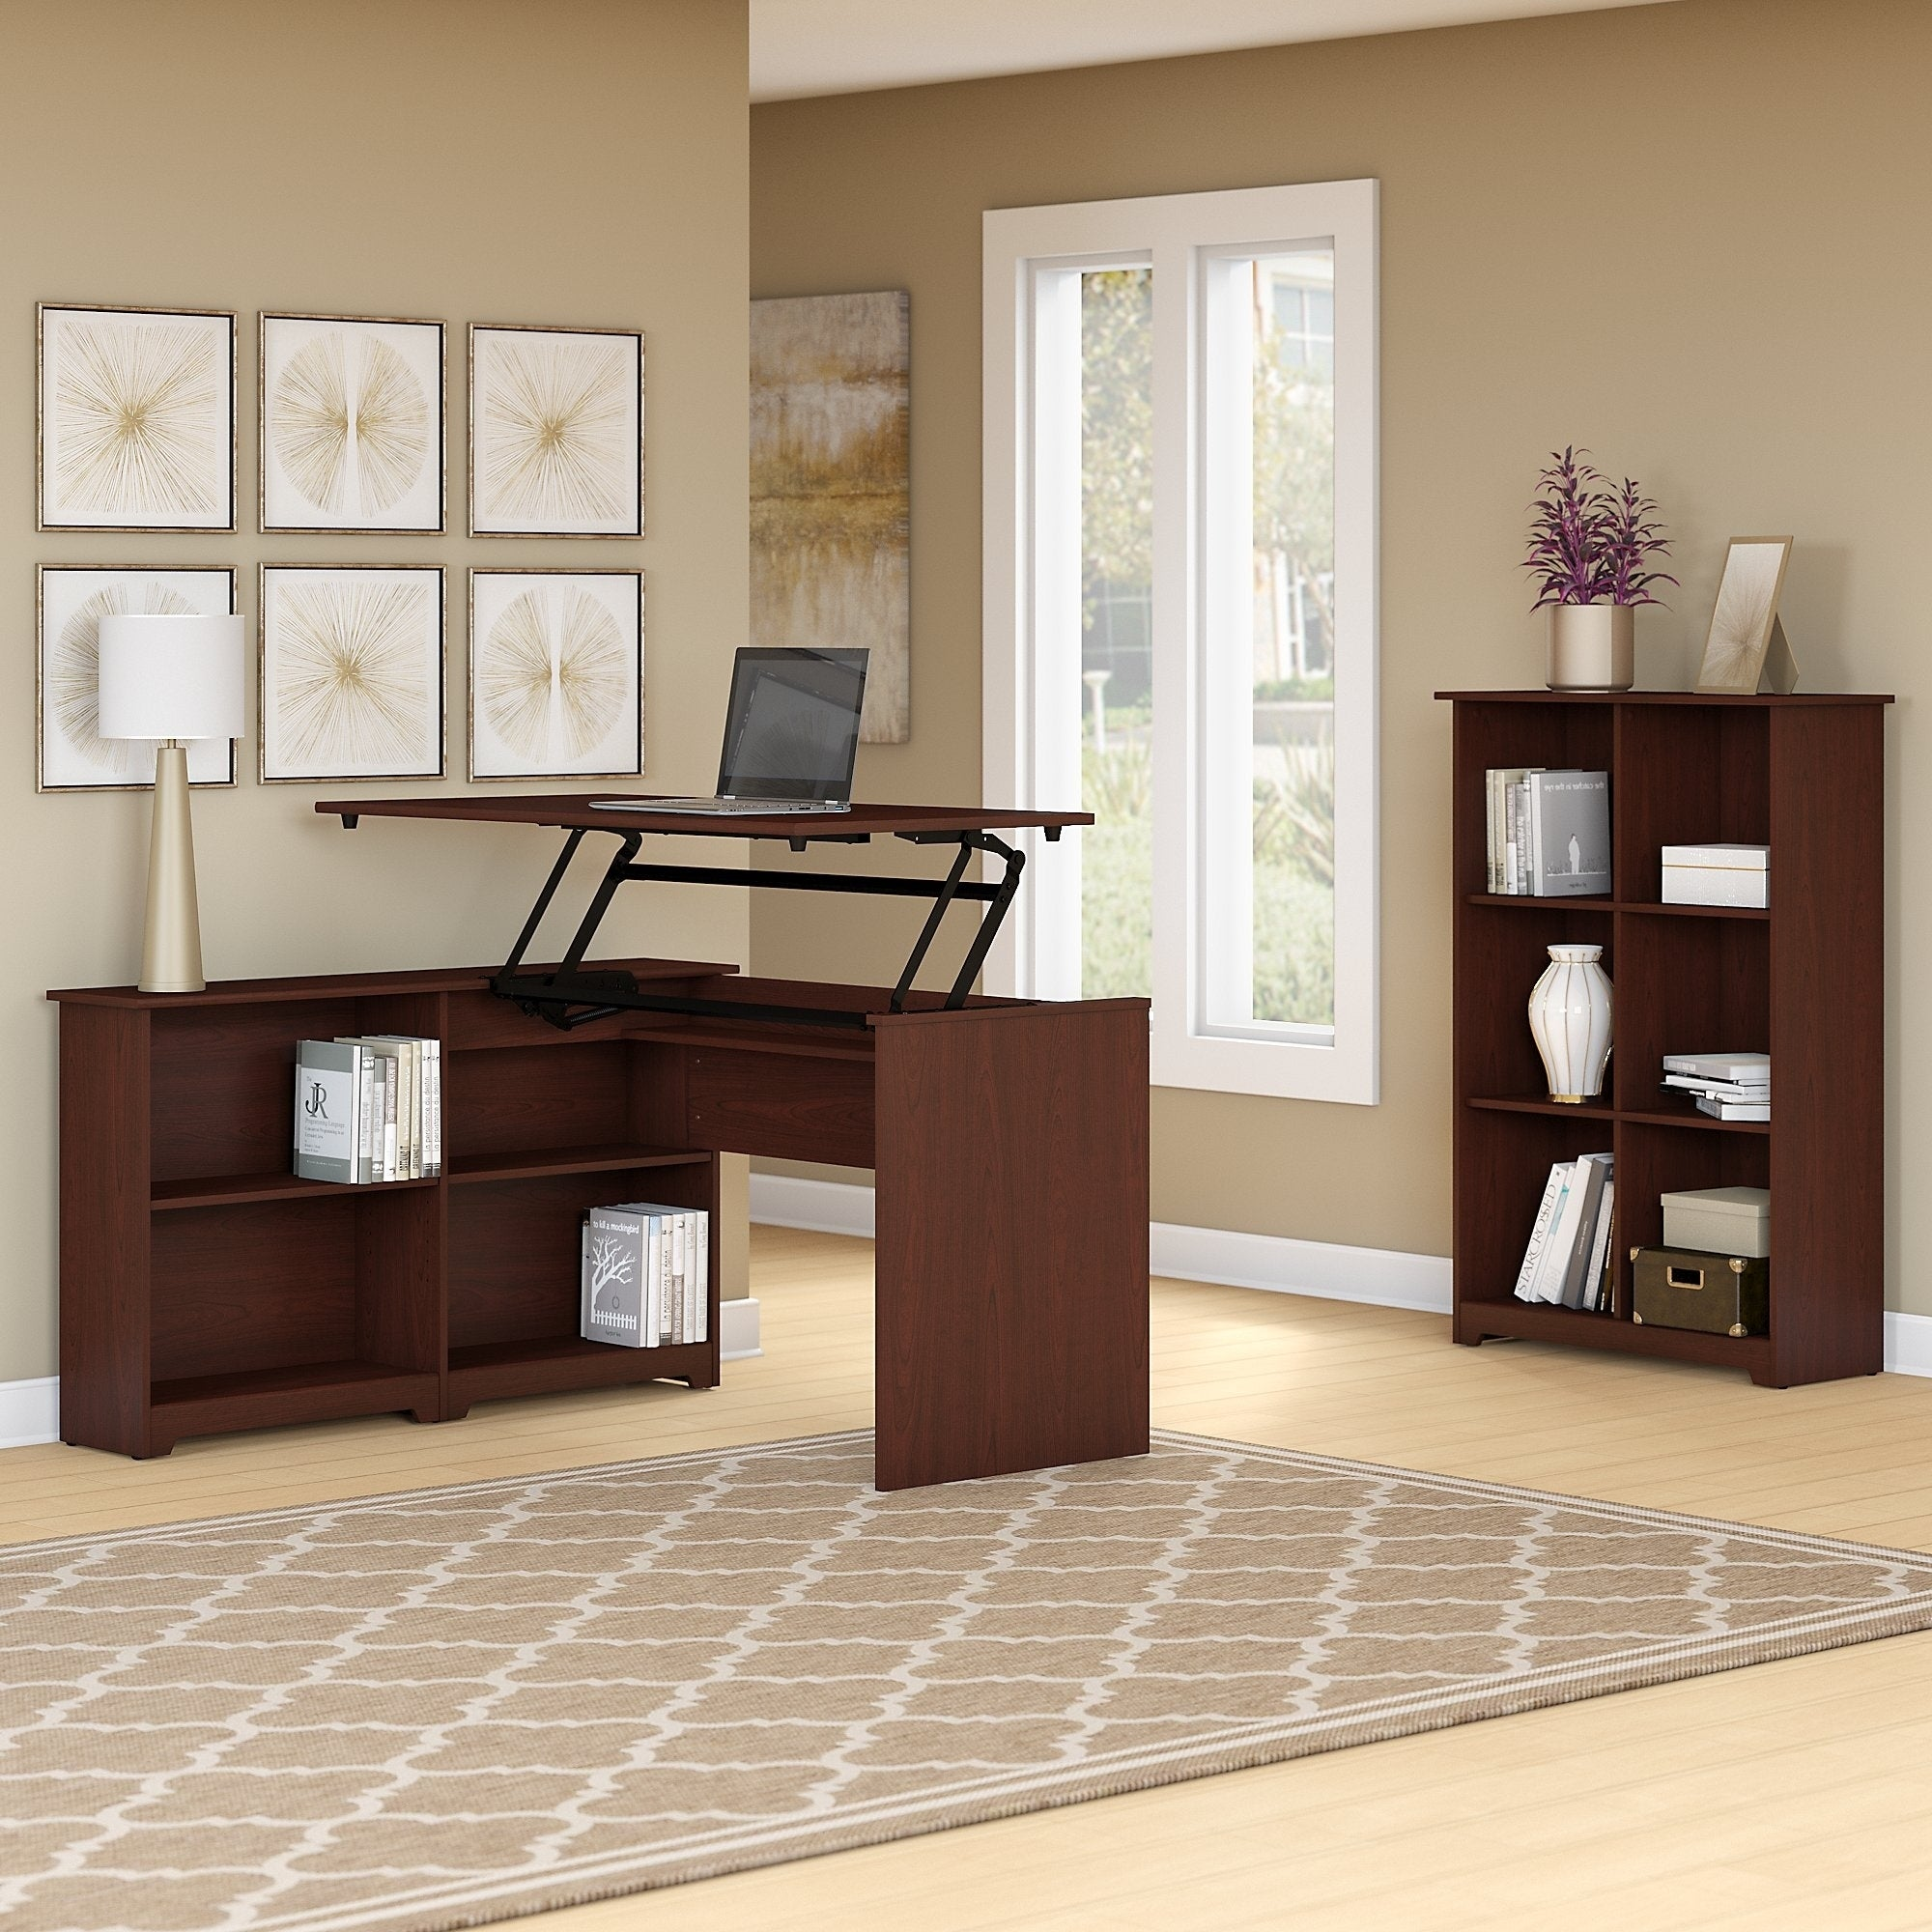 built combo and bookshelf entertainment piece ideas leaning six with center home house bookshelves in desk computer